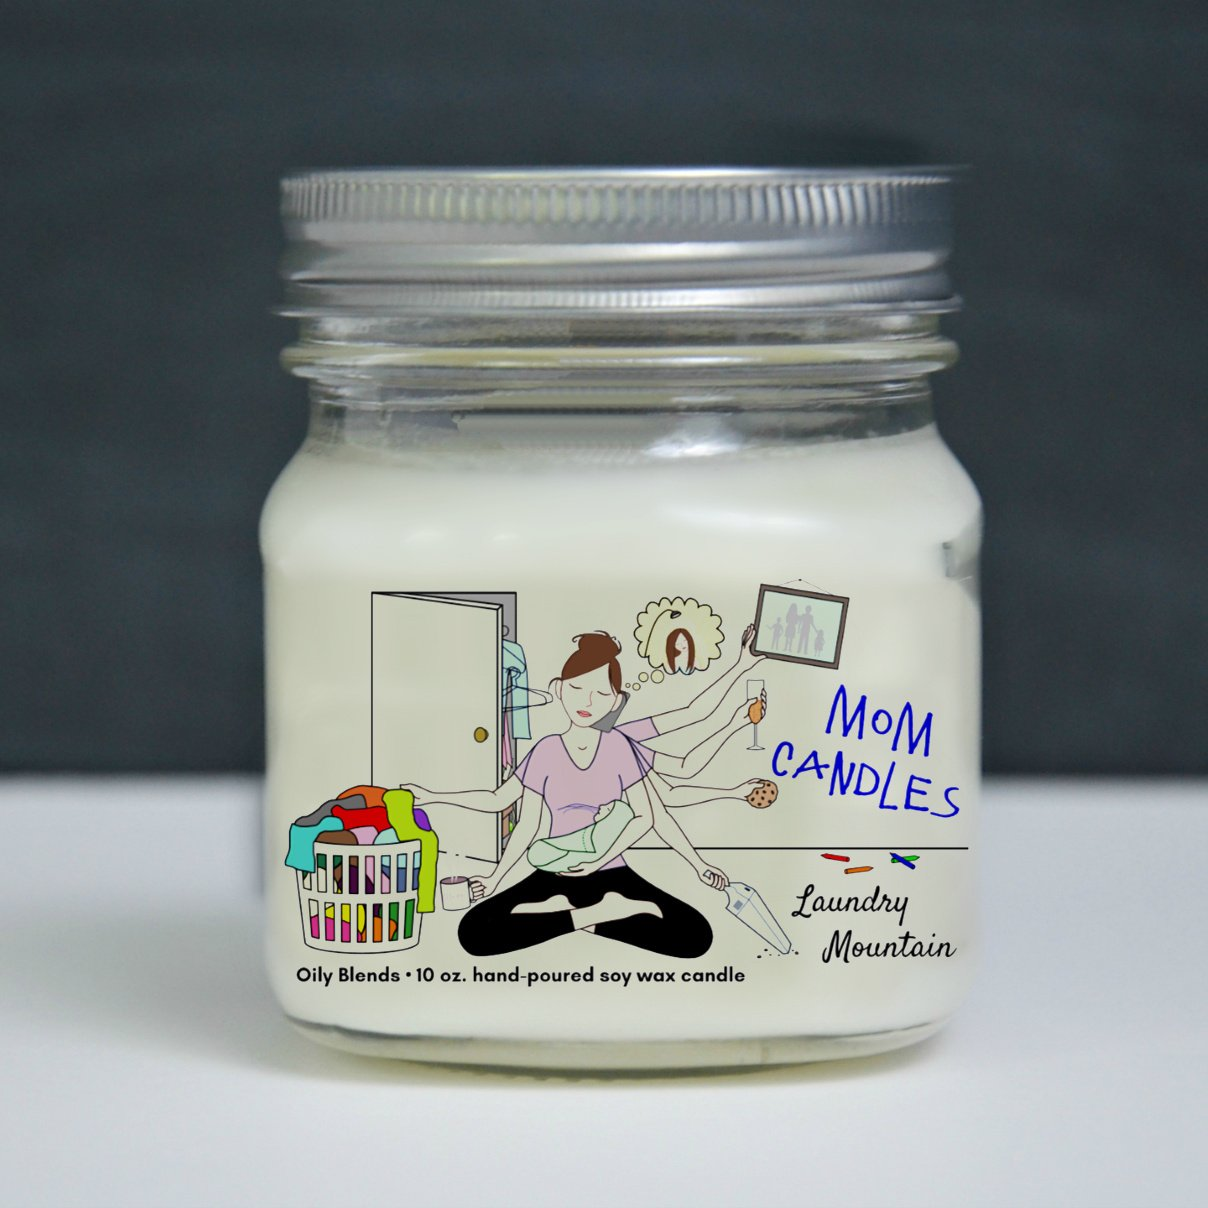 Mom Candle Sampler Packs